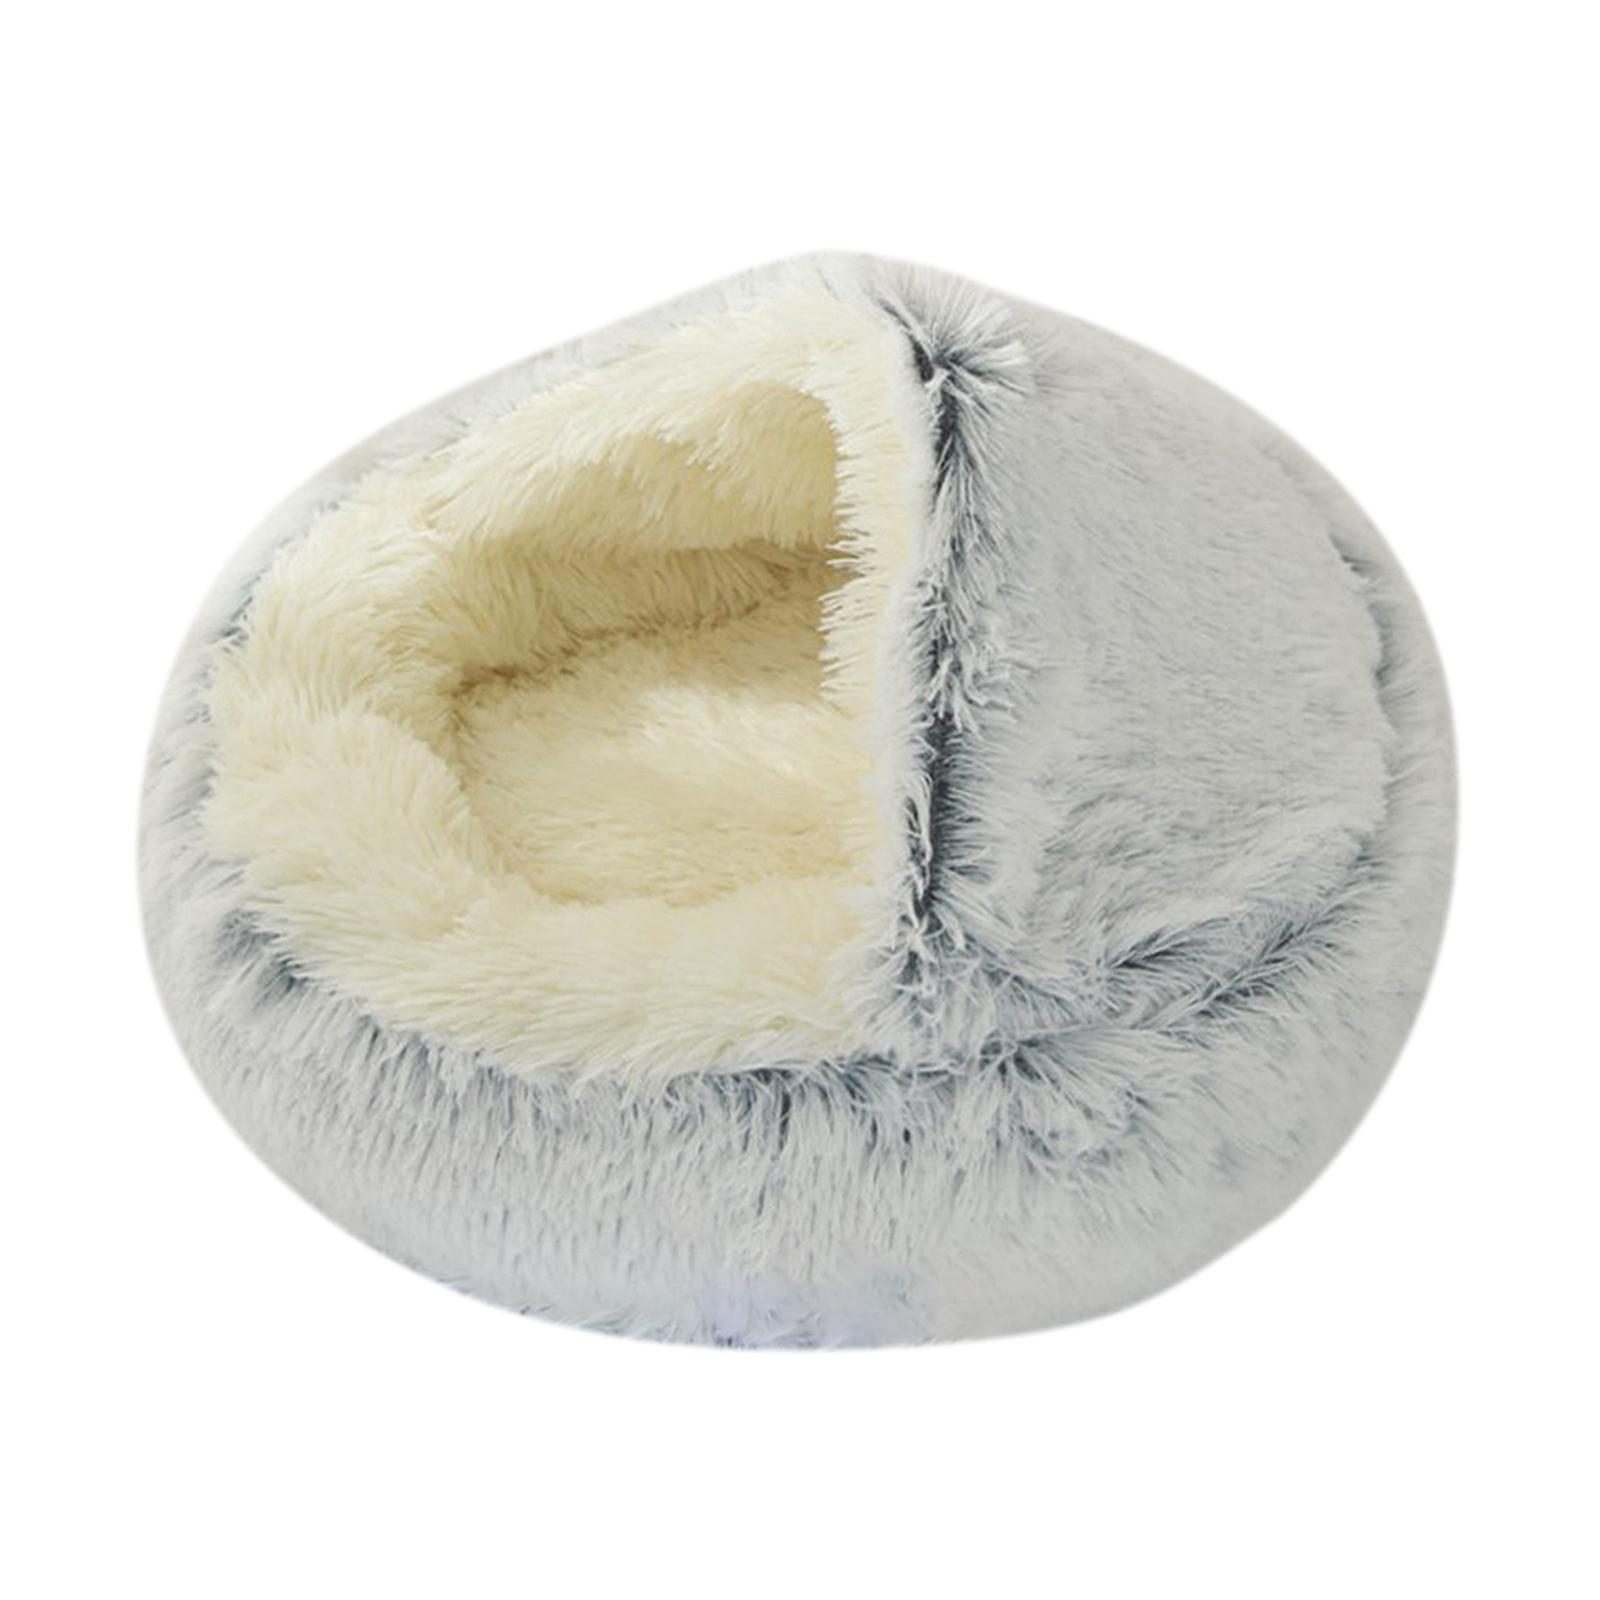 thumbnail 72 - Plush Pet Dog Cat Bed Fluffy Soft Warm Calming Bed Sleeping Kennel Cave Nest